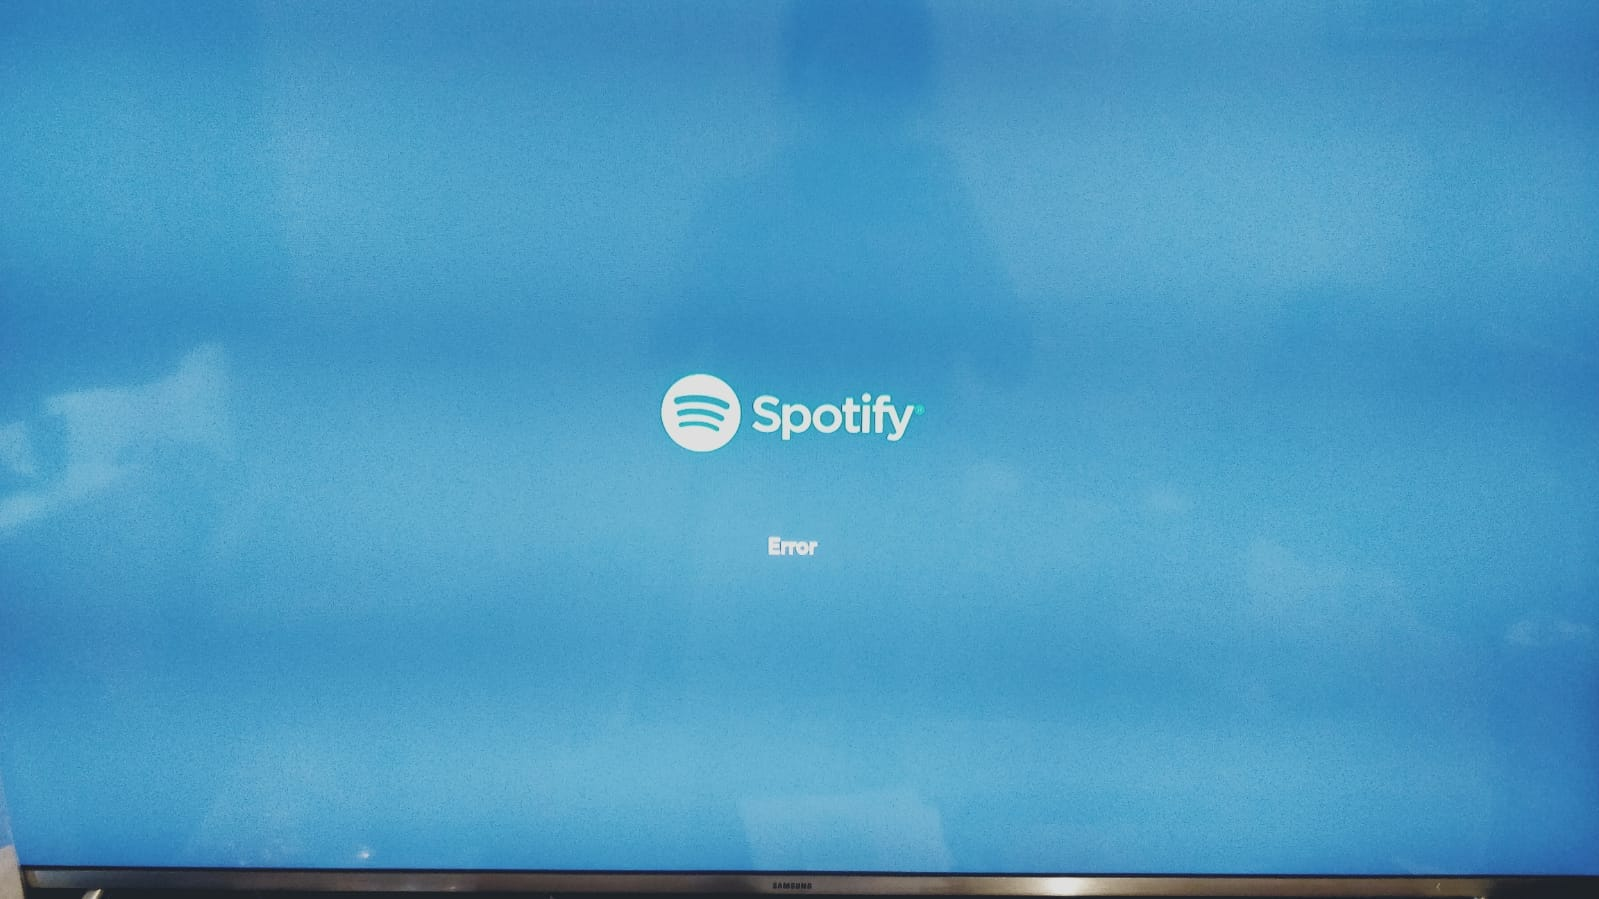 Samsung TV - Spotify